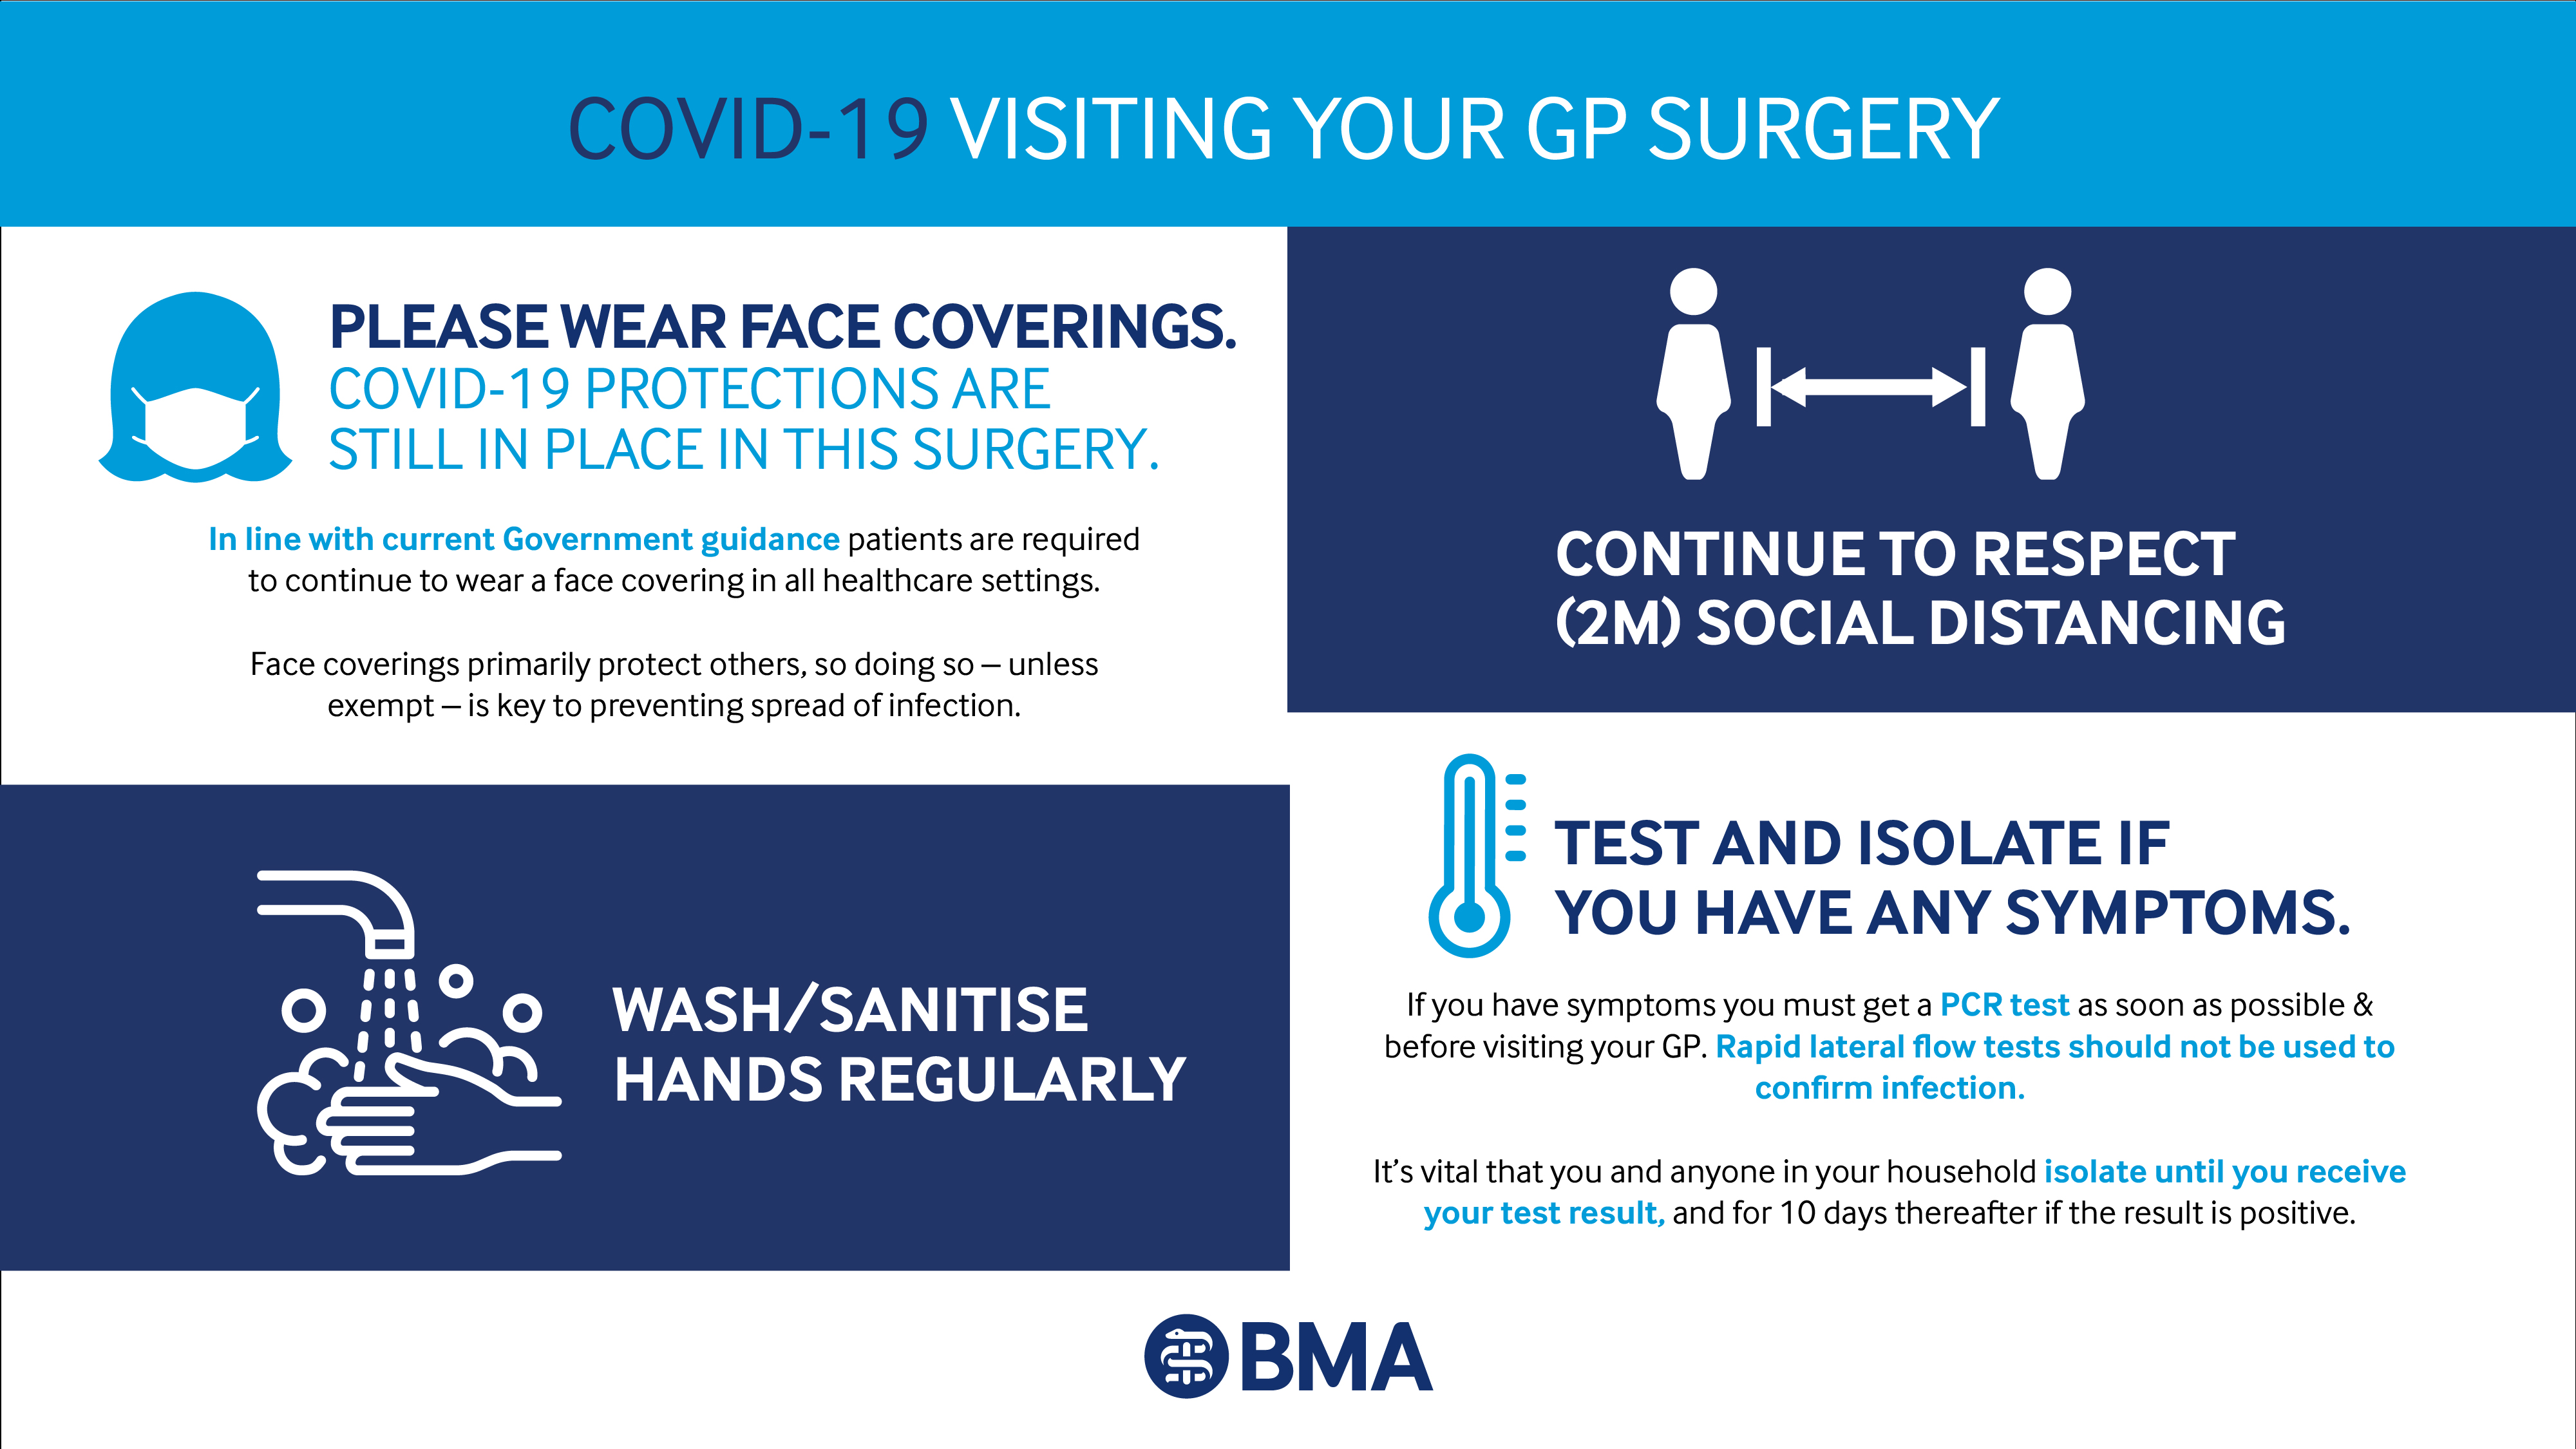 Covid 19 Visiting your GP Surgery poster text below